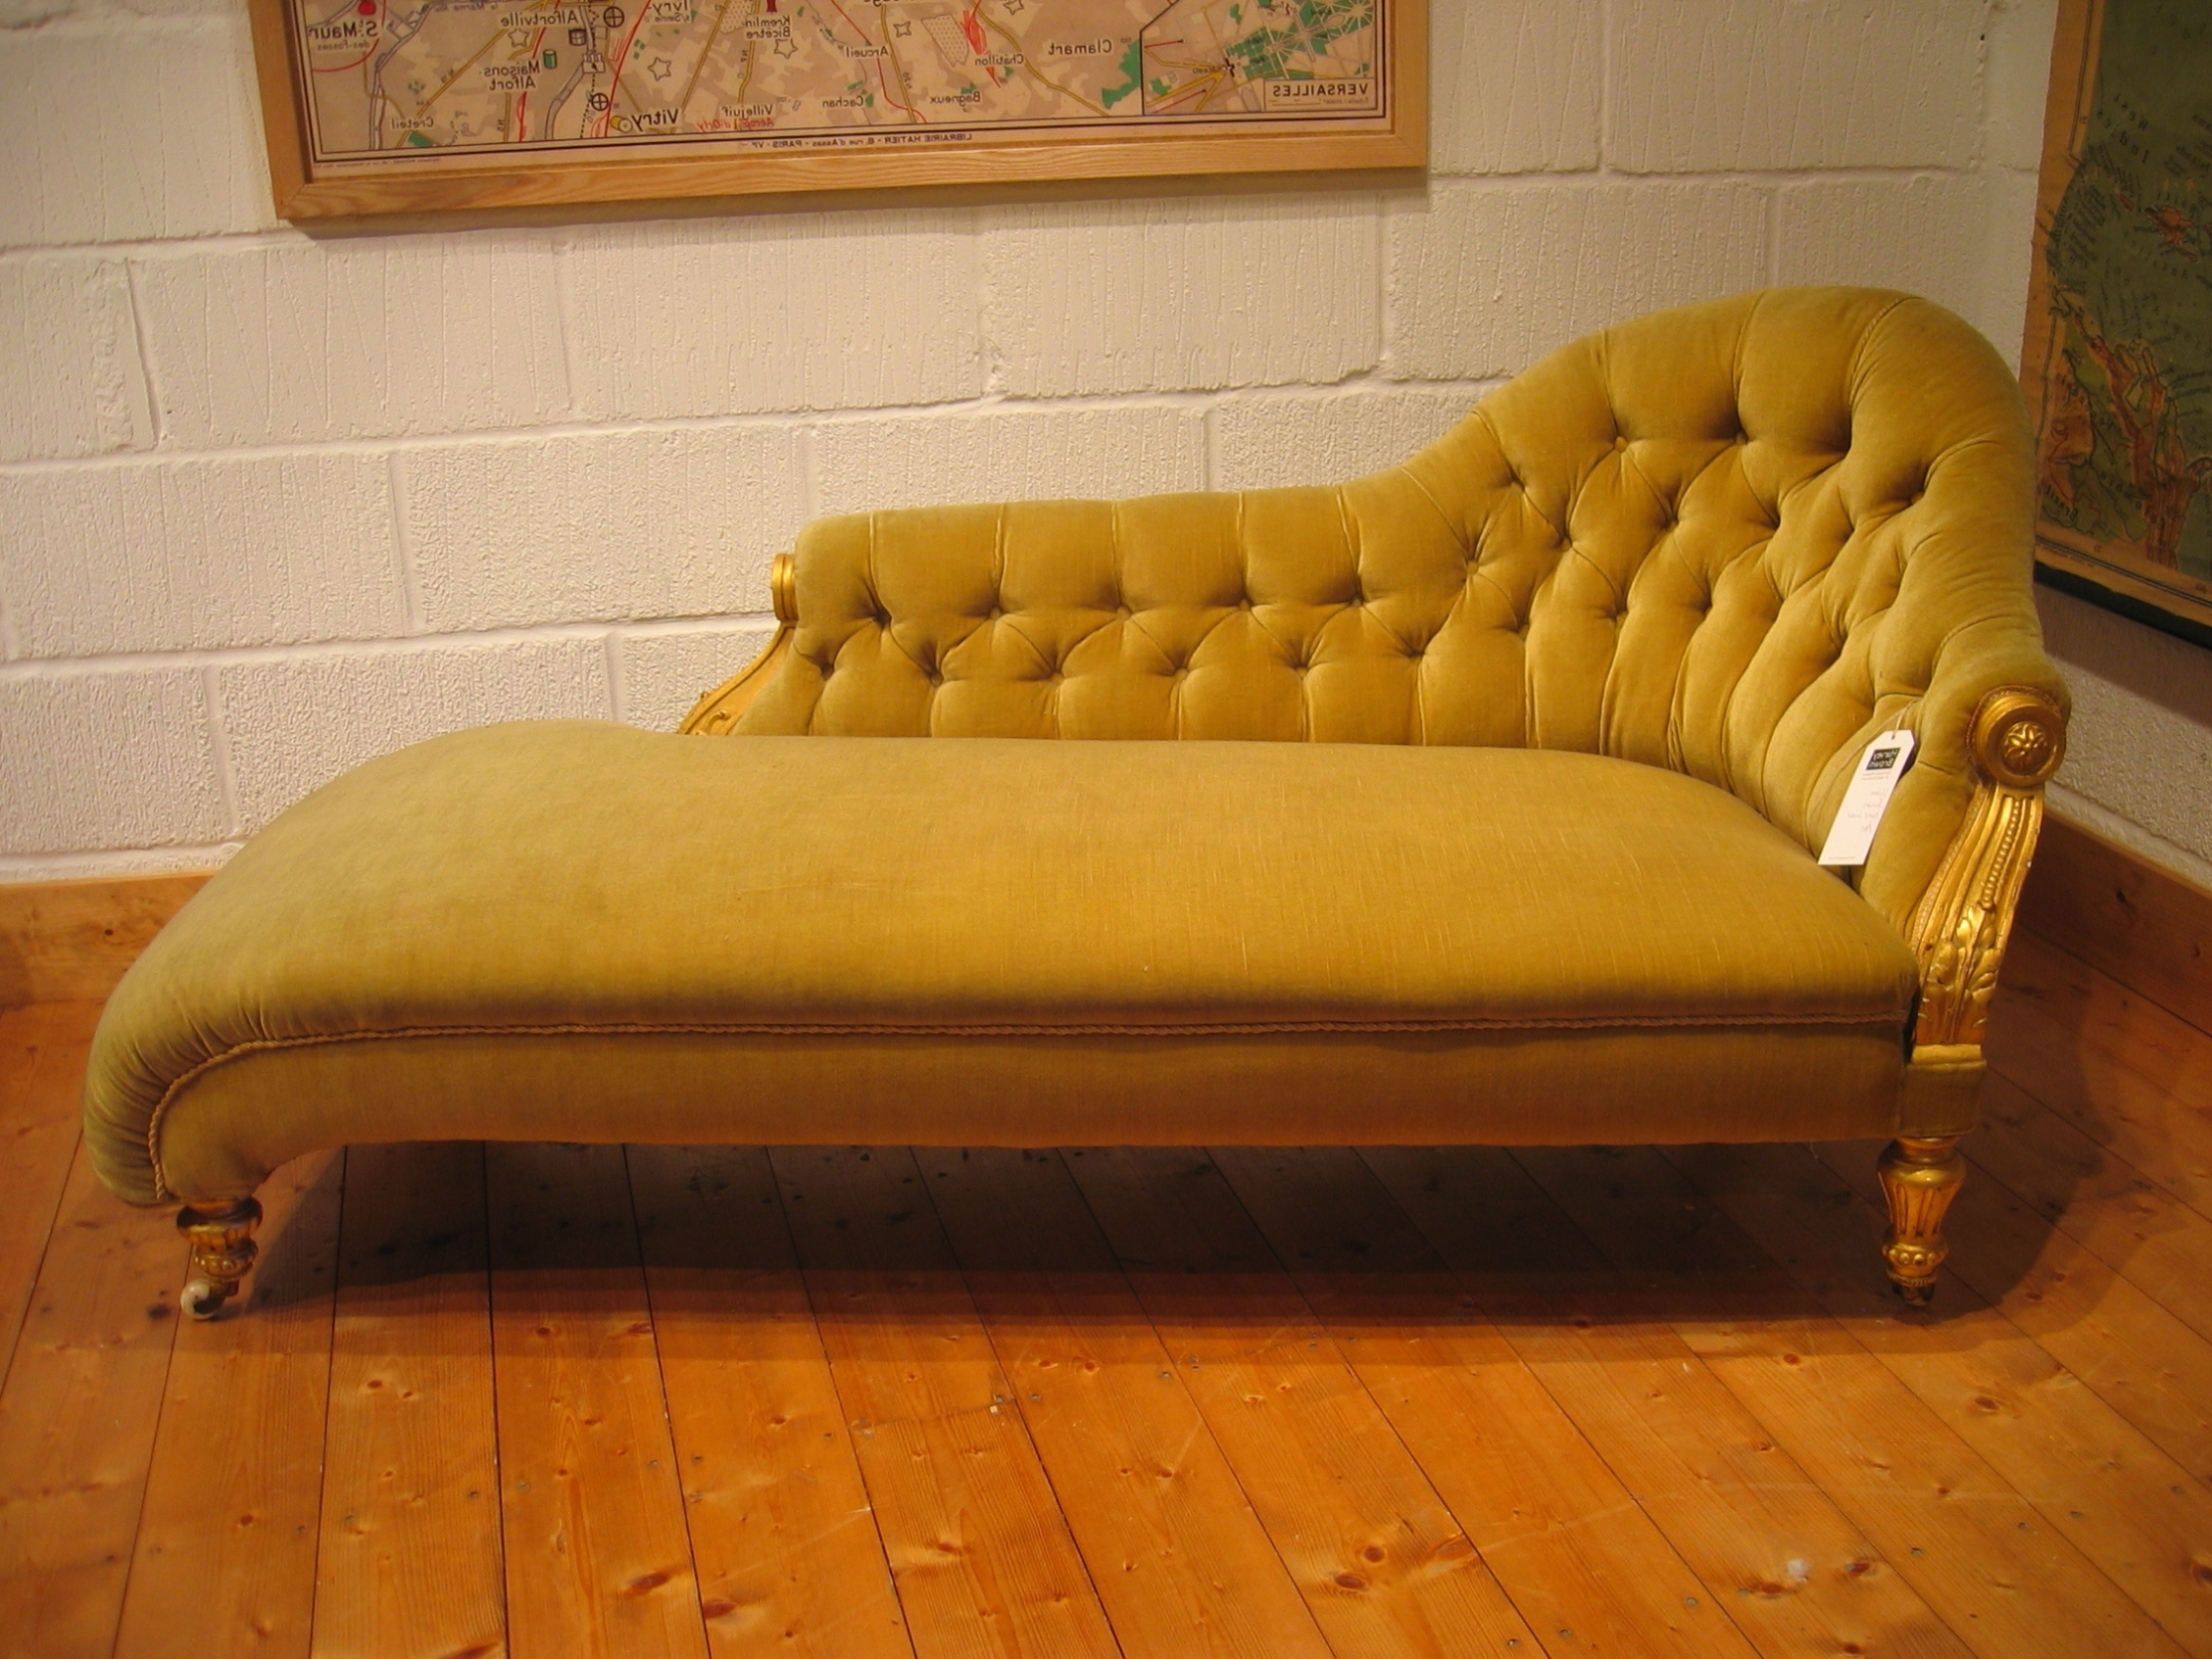 Most Recently Released Home Decor: Yellow Color Antique Victorian Chaise Lounge Sofa Bed Pertaining To Vintage Indoor Chaise Lounge Chairs (View 5 of 15)